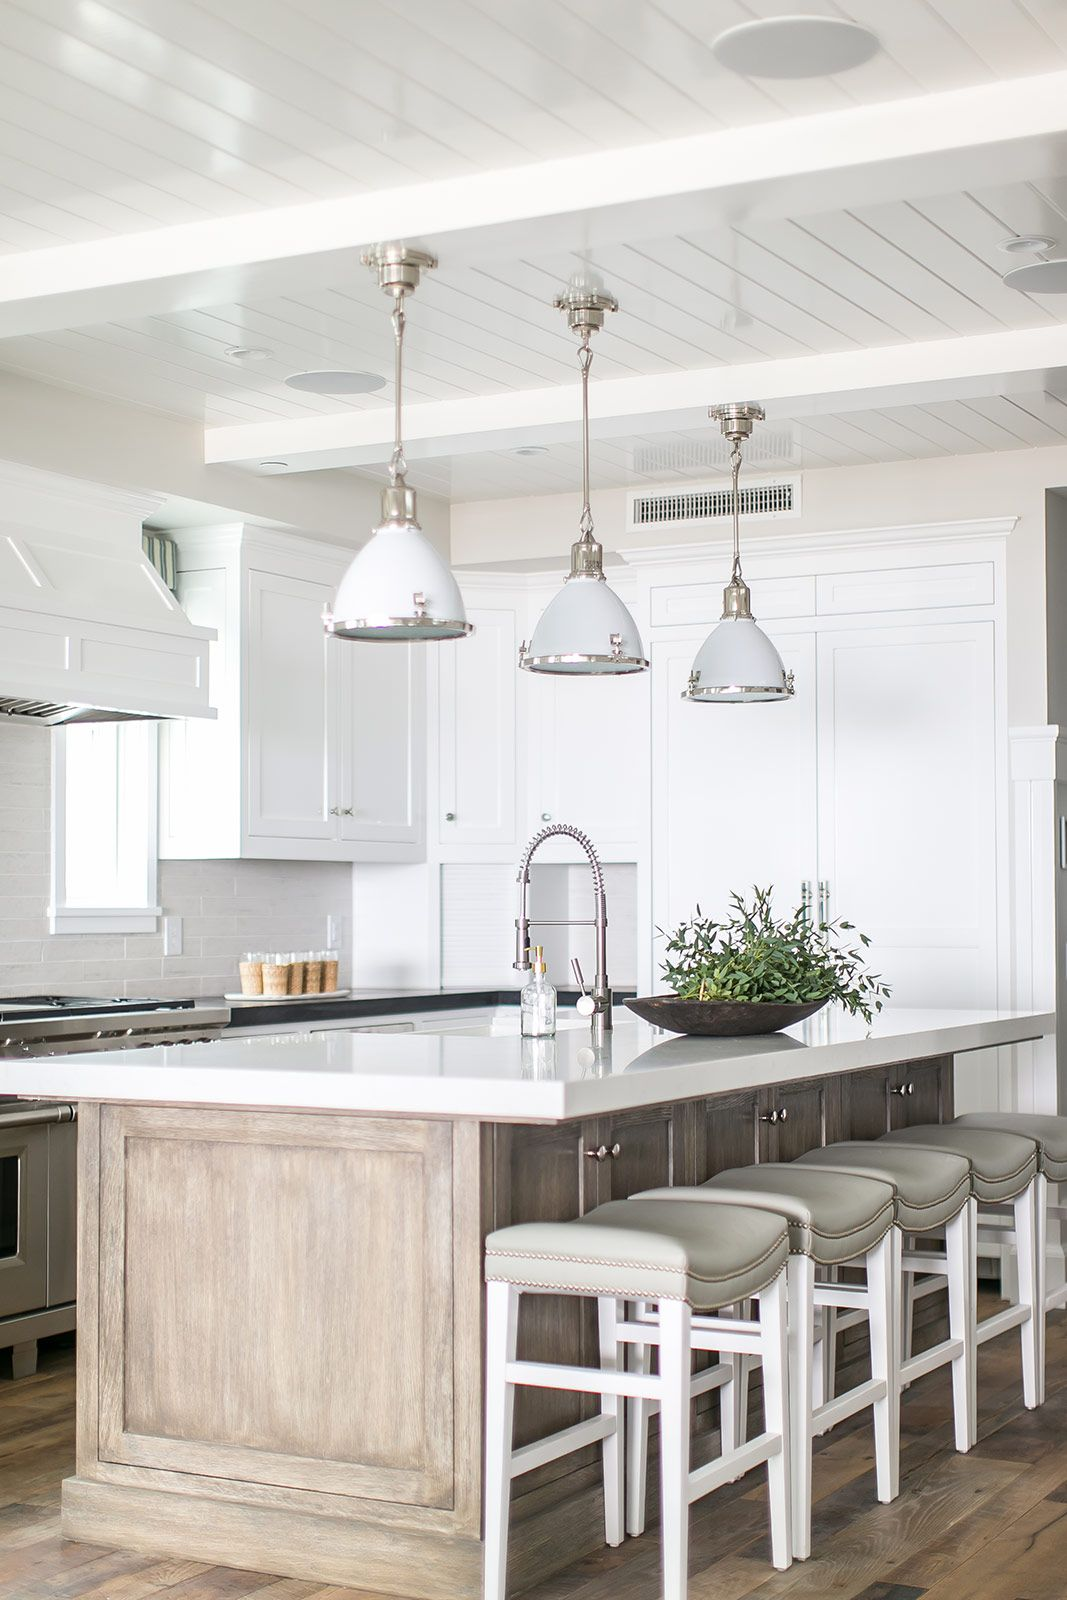 White Kitchen Design With Light Wooden Cabinets And Detailed Ceilings Brooke Wagner